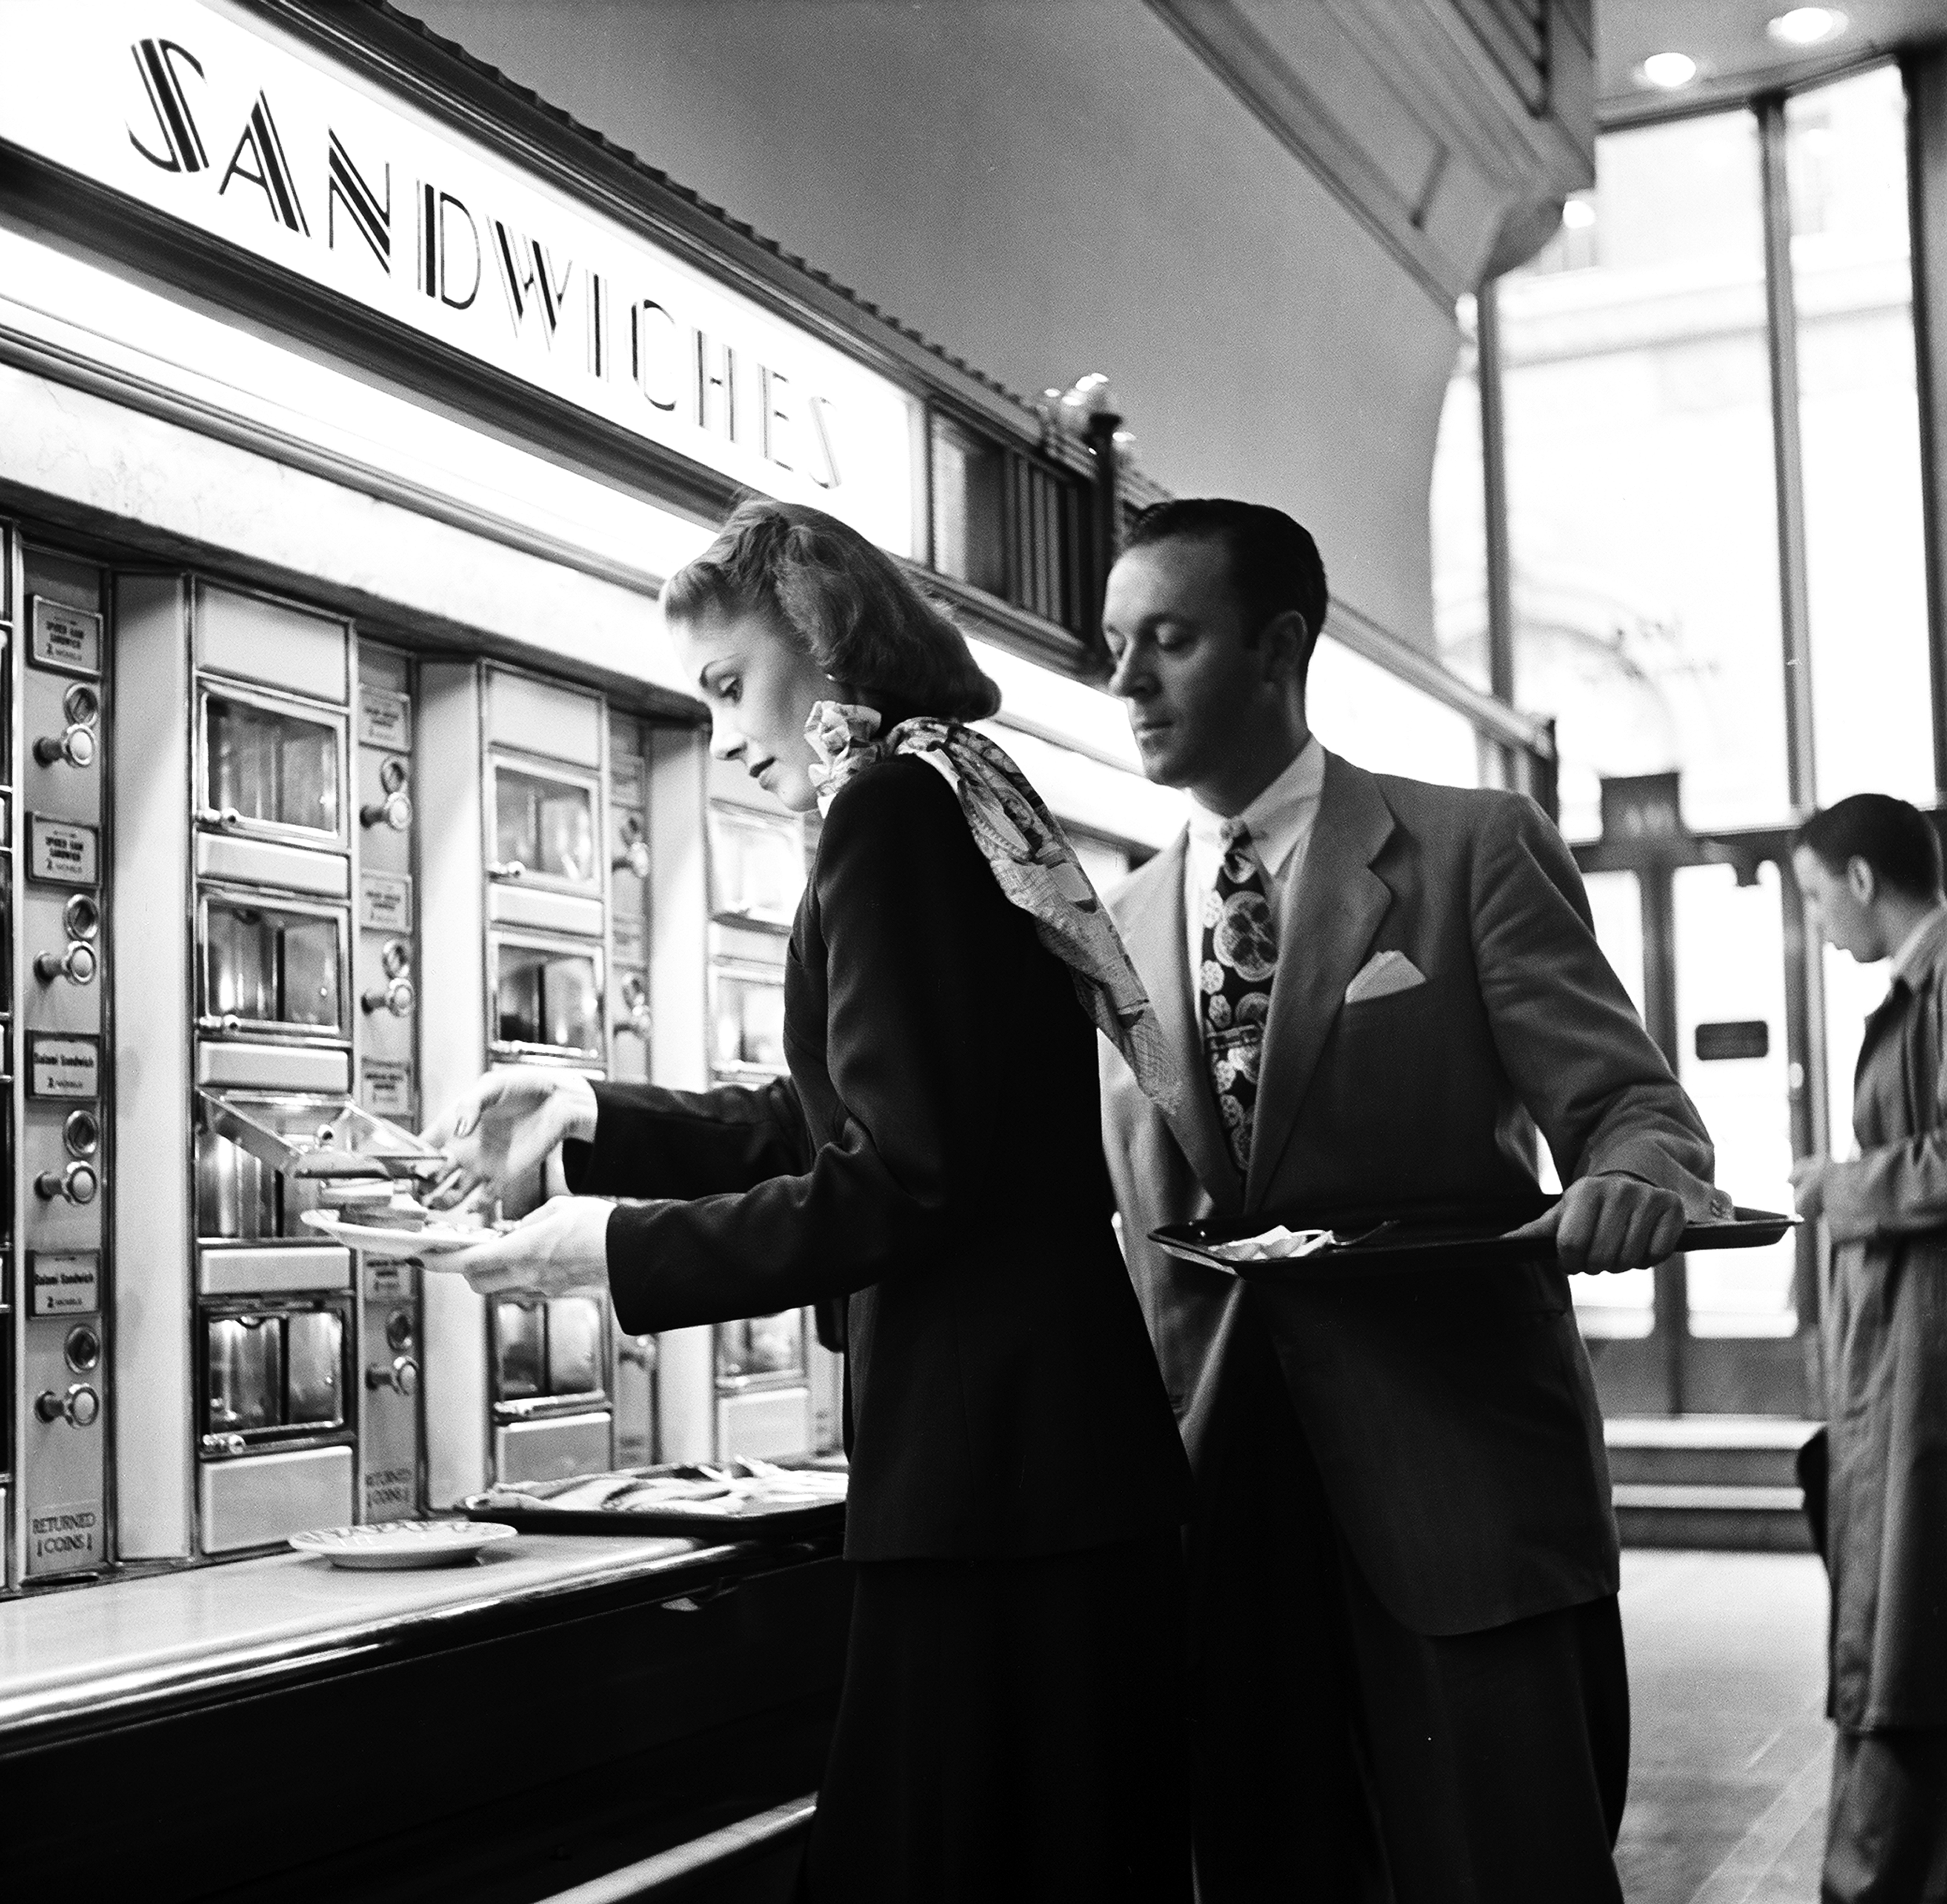 An automat at NYC's Grand Central Station, 1948.